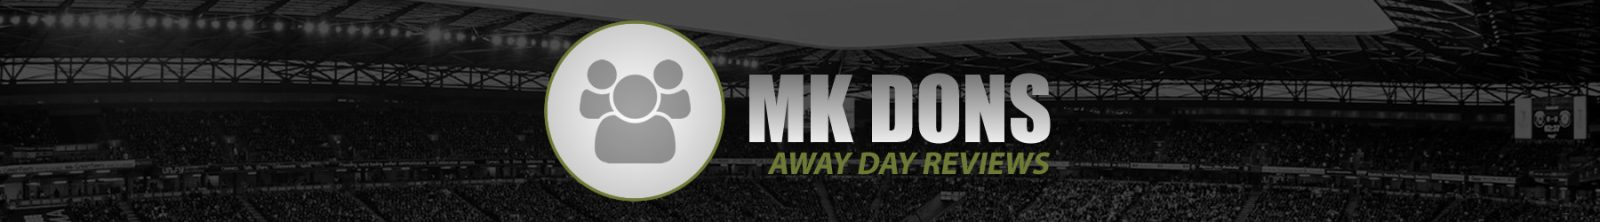 Review MK Dons